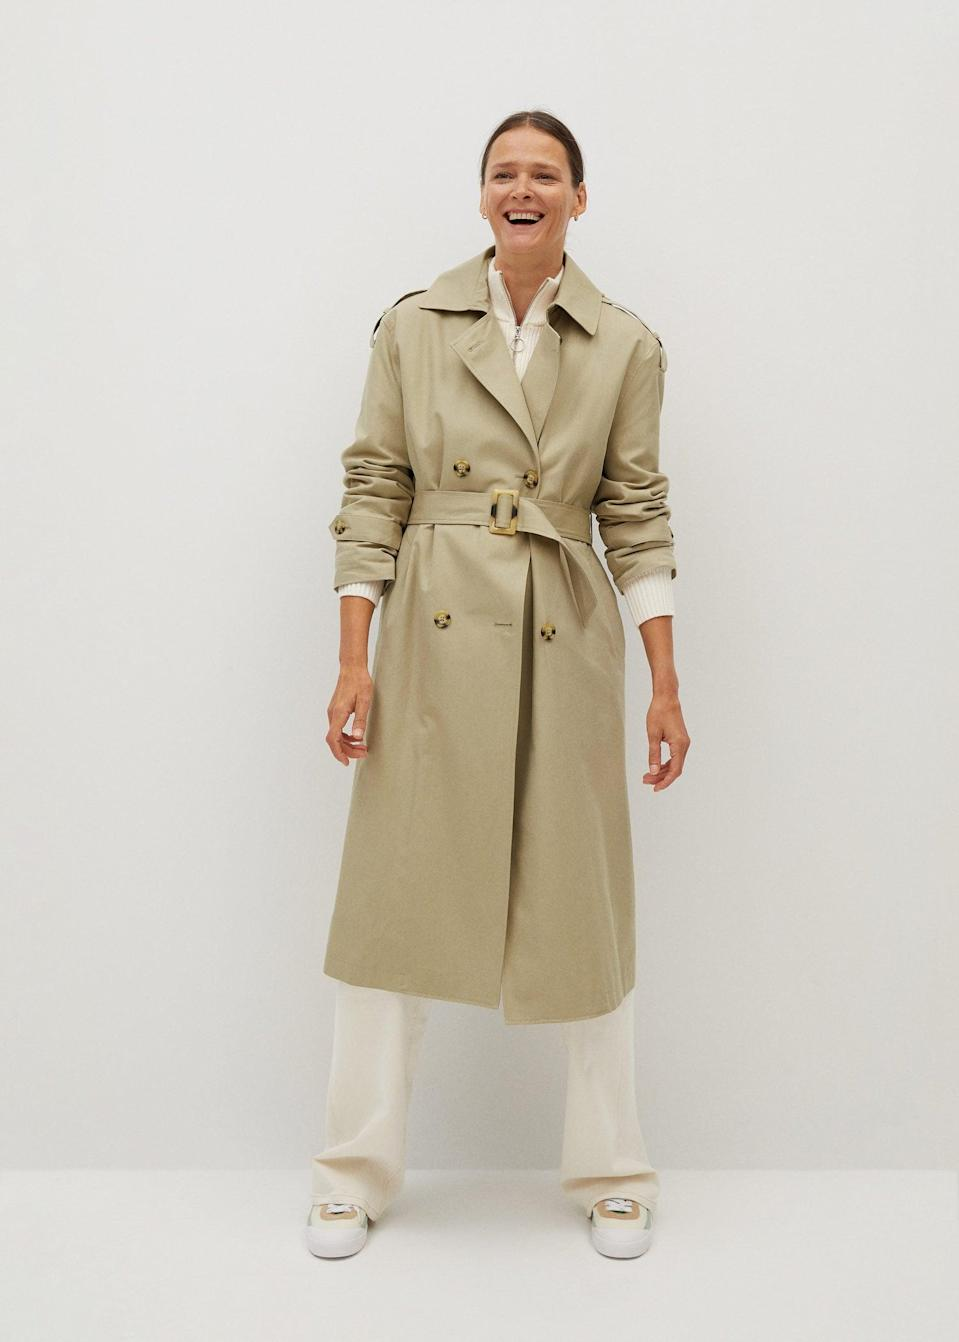 <p>Trench coats have an enduring appeal, and this <span>Classic belted trench</span> ($150) is no exception.</p>